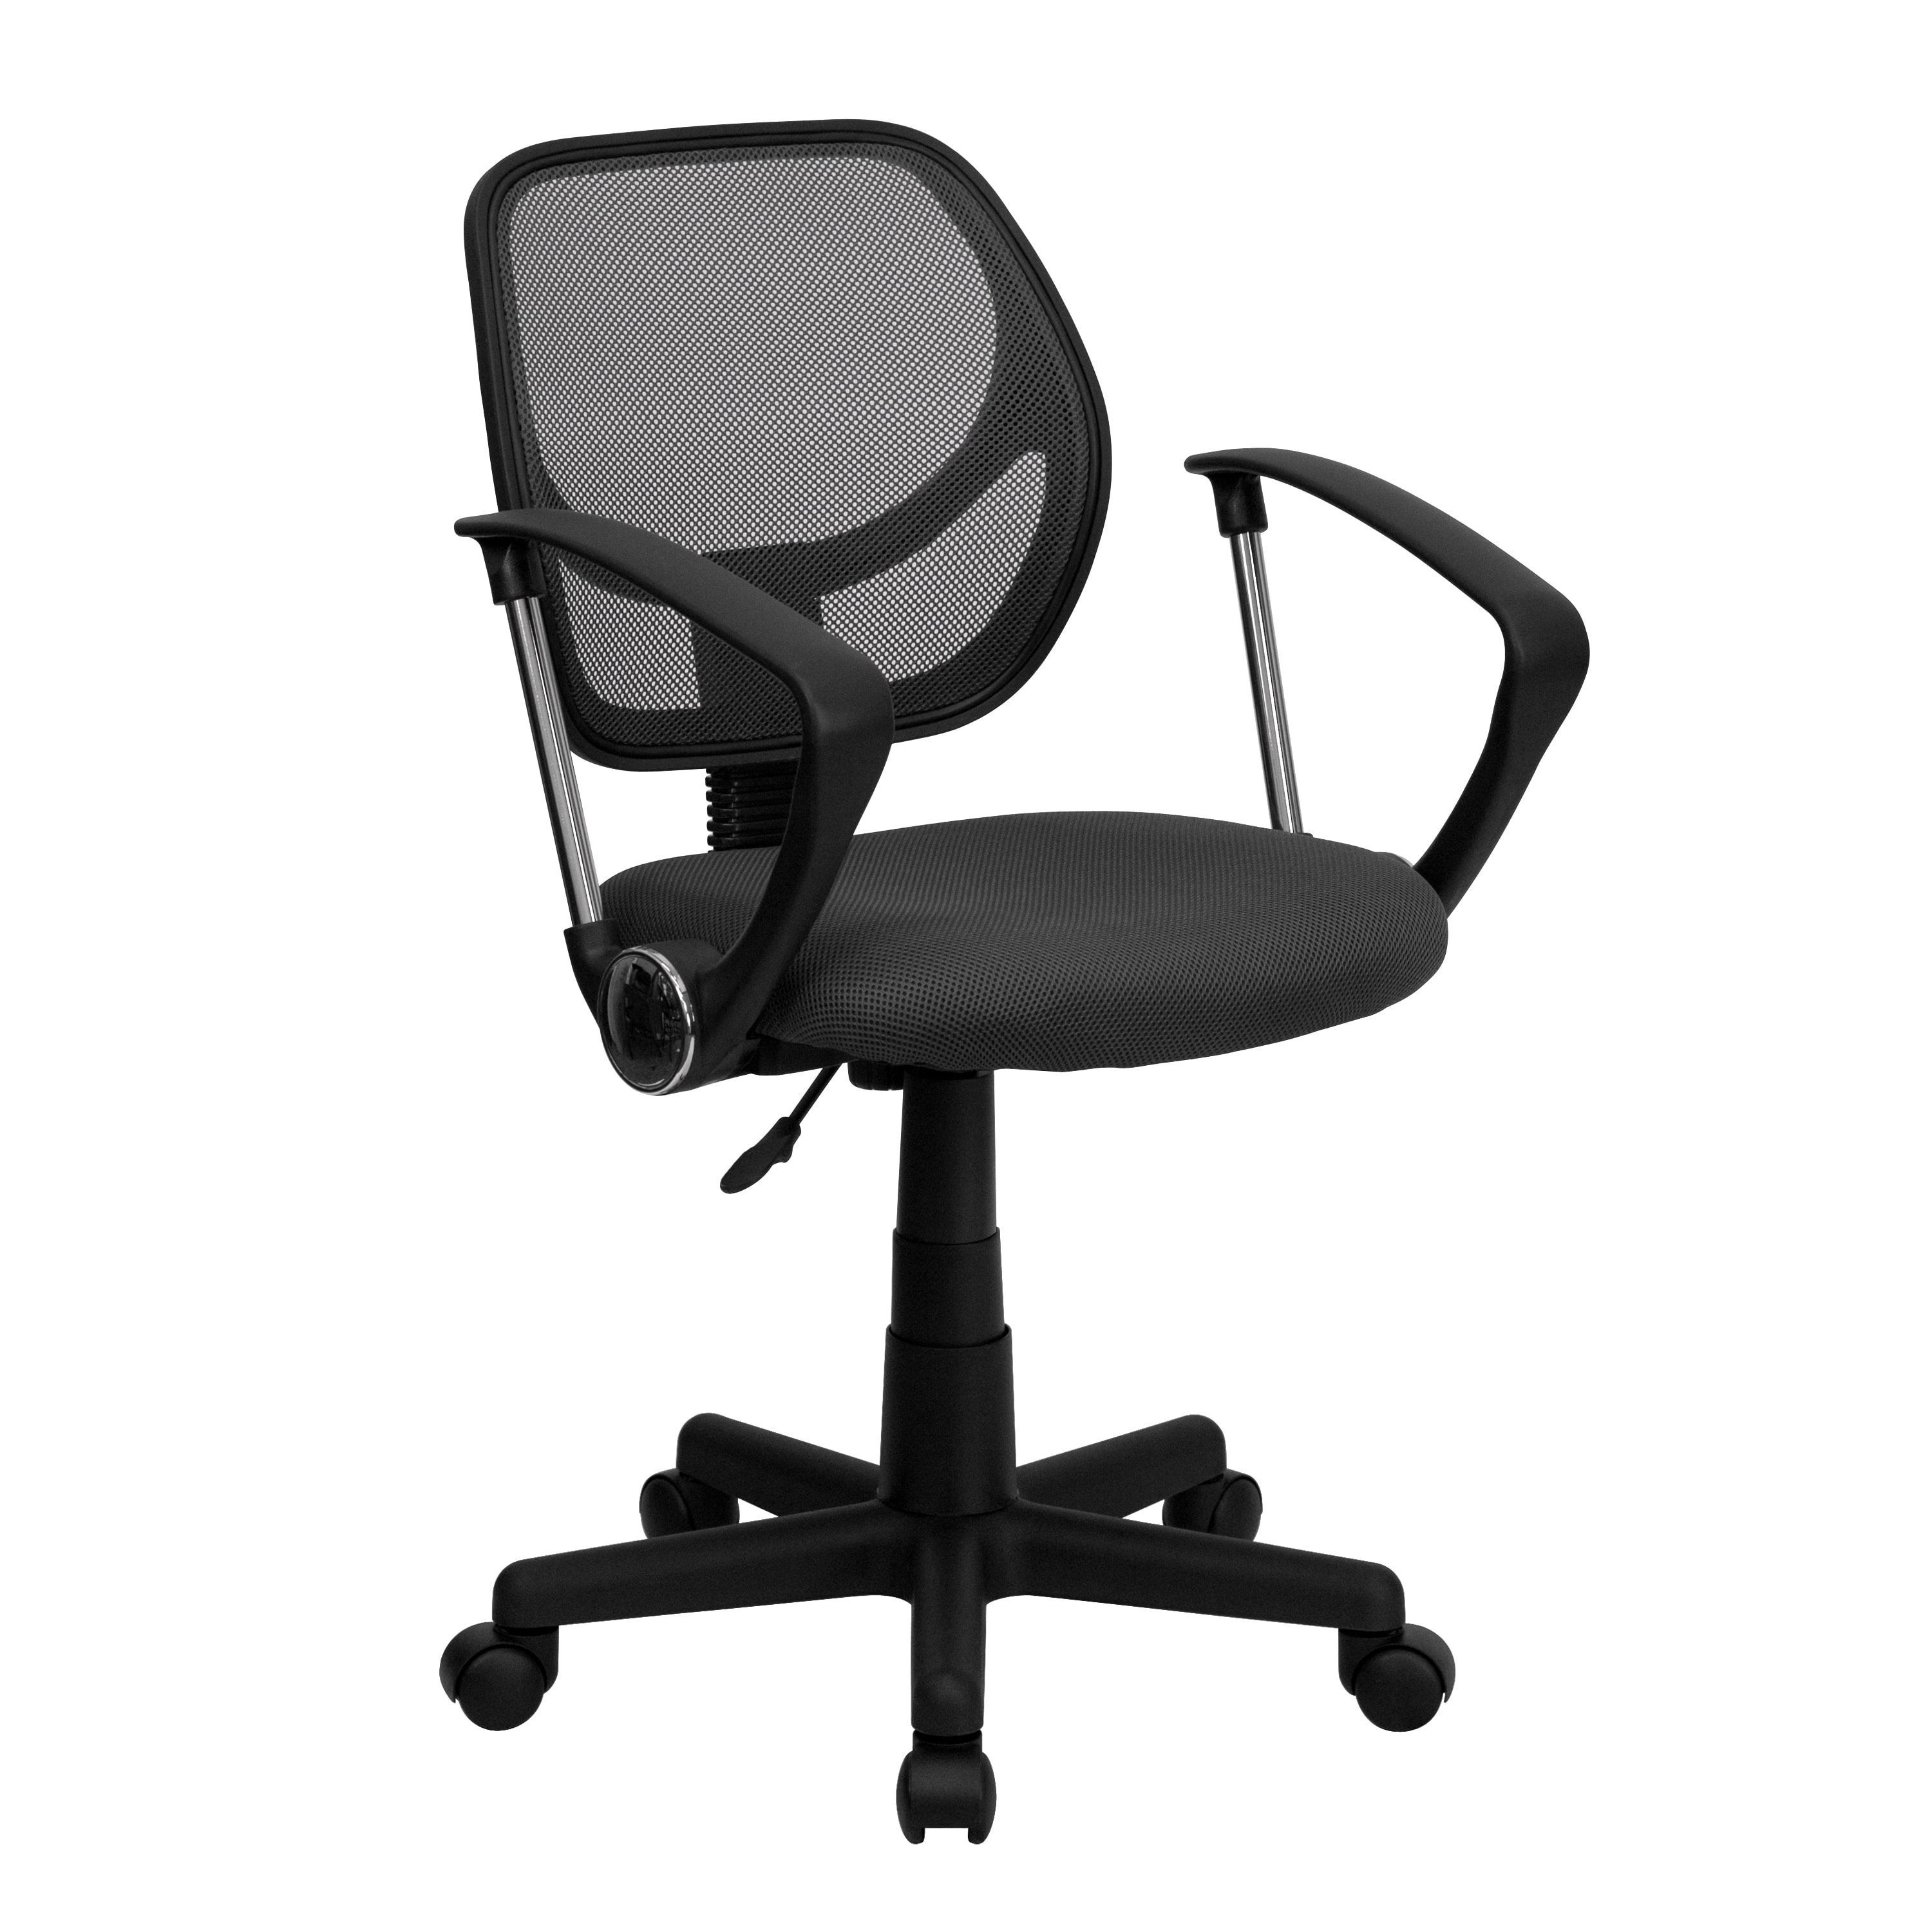 Ventilated Mesh Swivel fice Chair With Pneumatic Seat Height